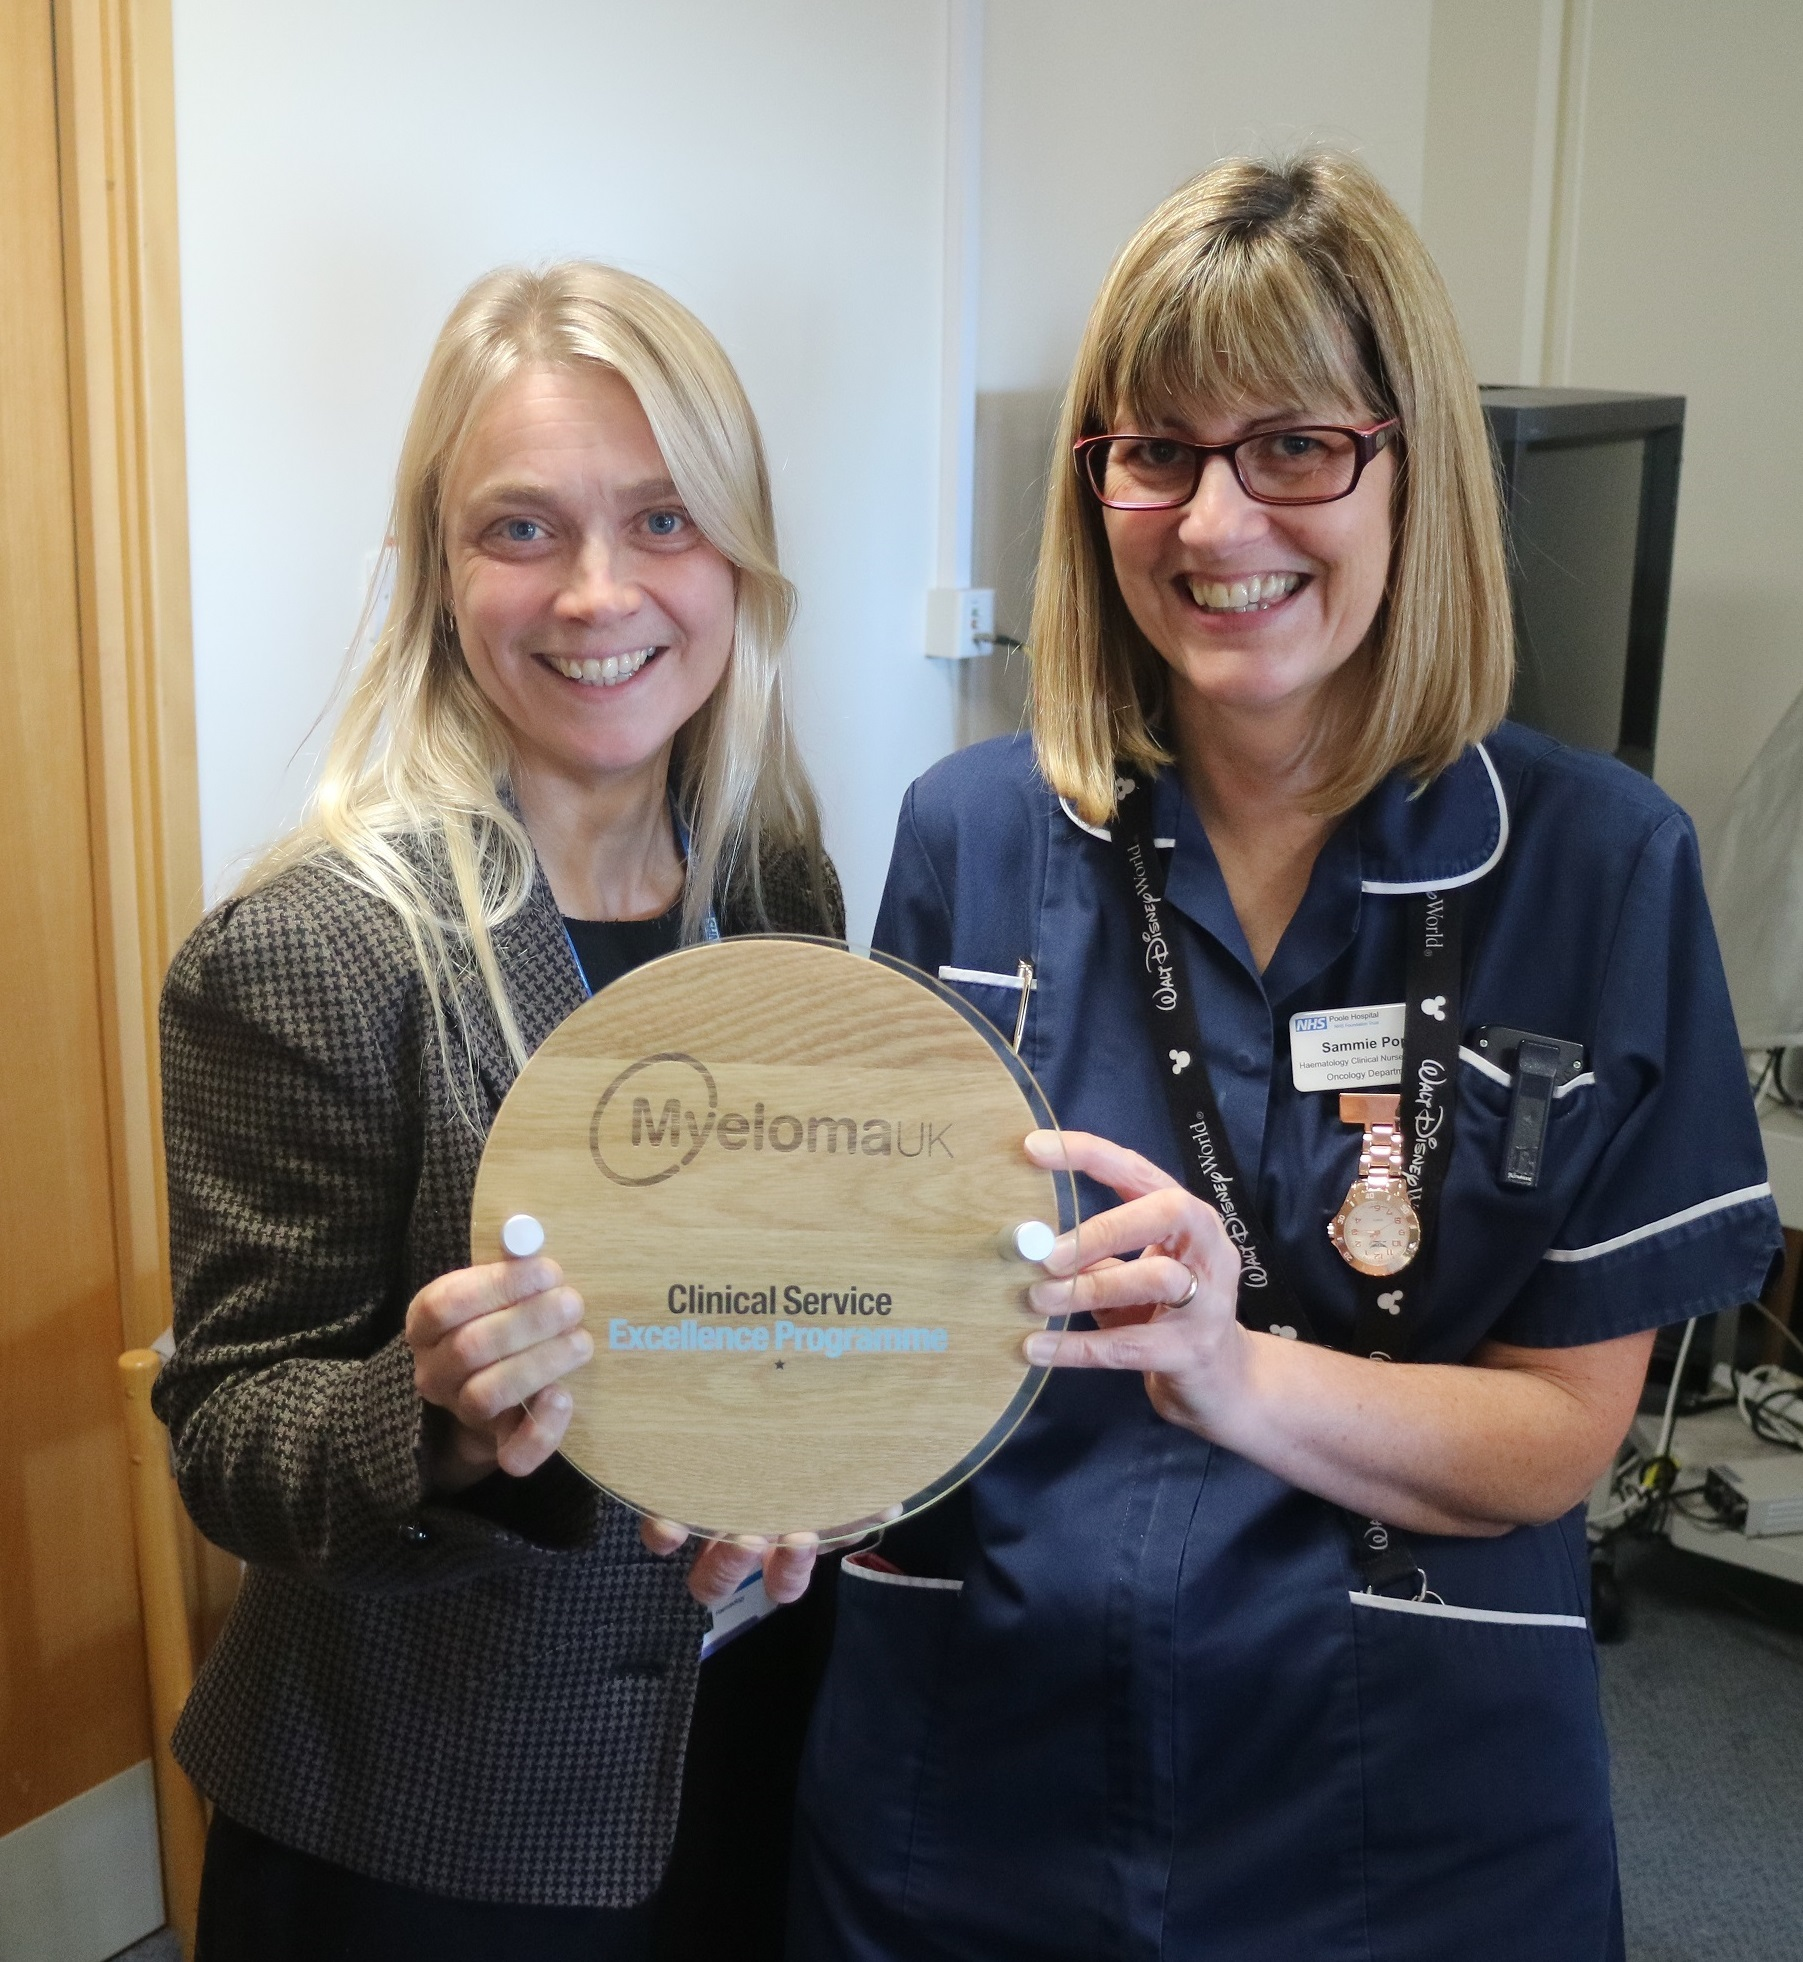 Dr Rebecca Maddams and Sammie Pope, haematology clinical nurse specialist, with the accreditation plaque